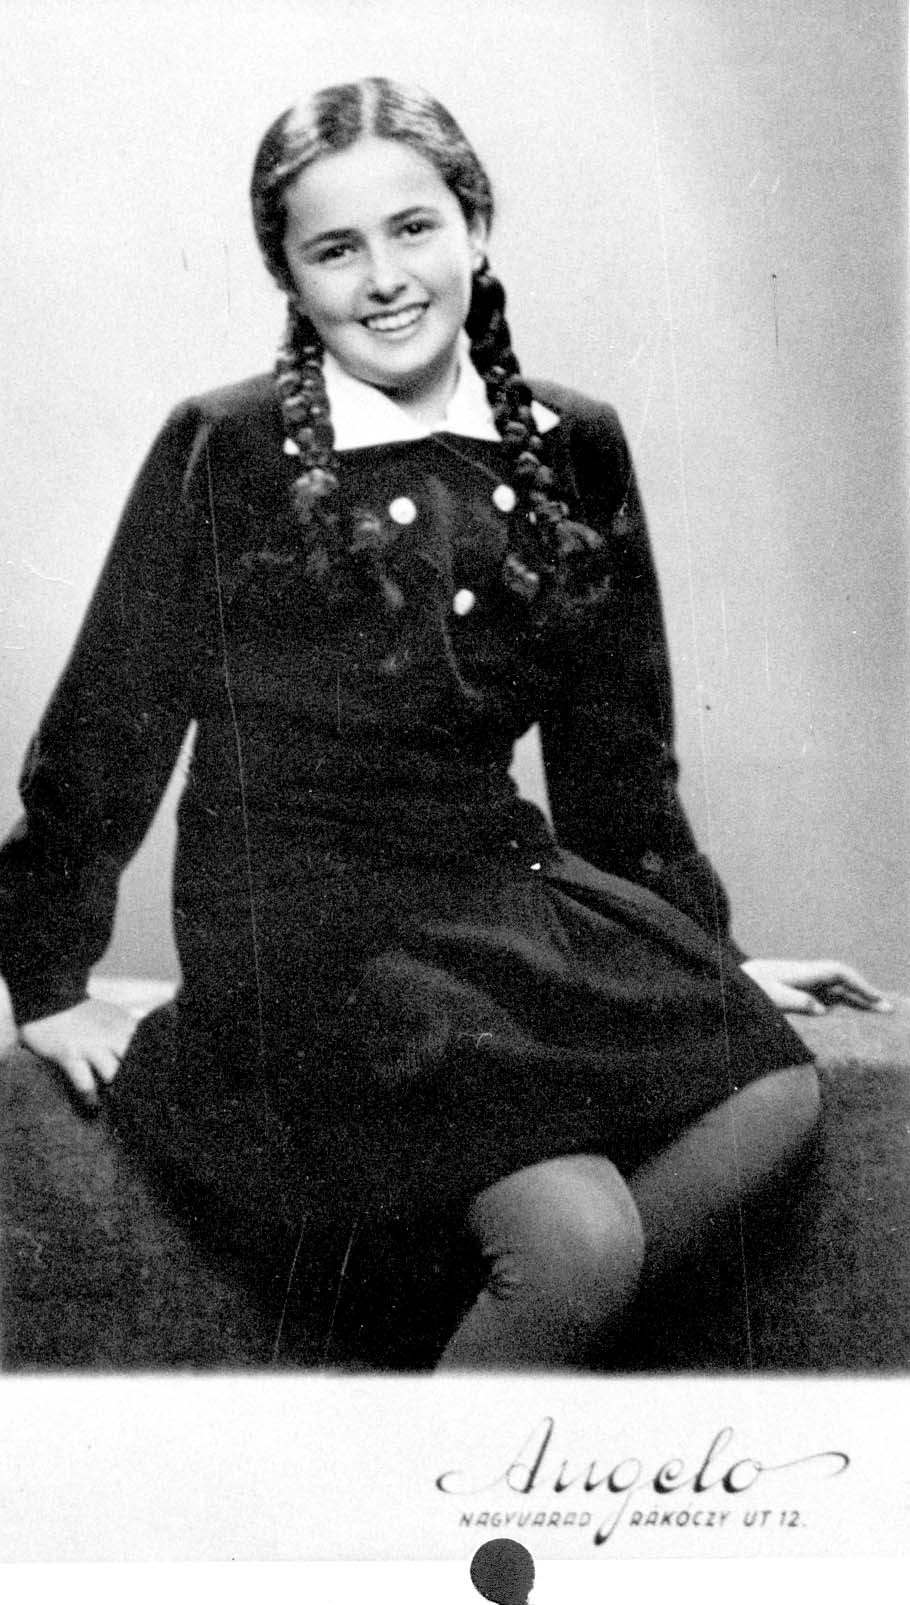 Éva Heyman, aged 13, in Hungary a few months before she was murdered in a gas chamber, 1944